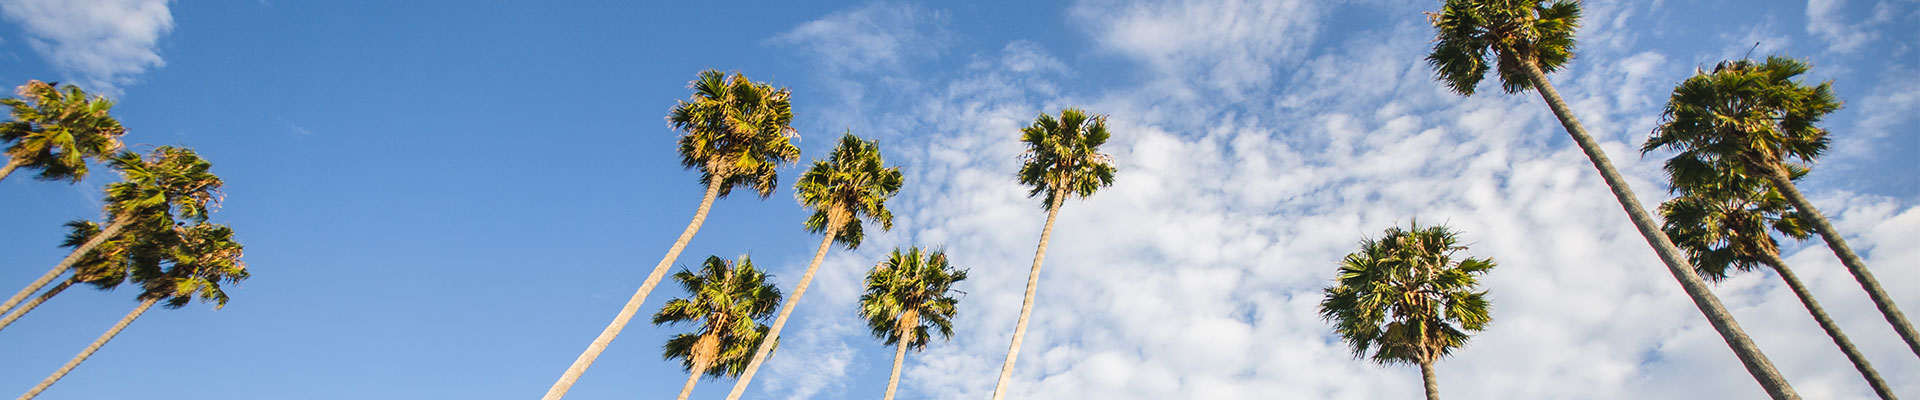 Fantasy RV Tours: 6 Day Palm Springs Valley Bash (06URRP-040222)